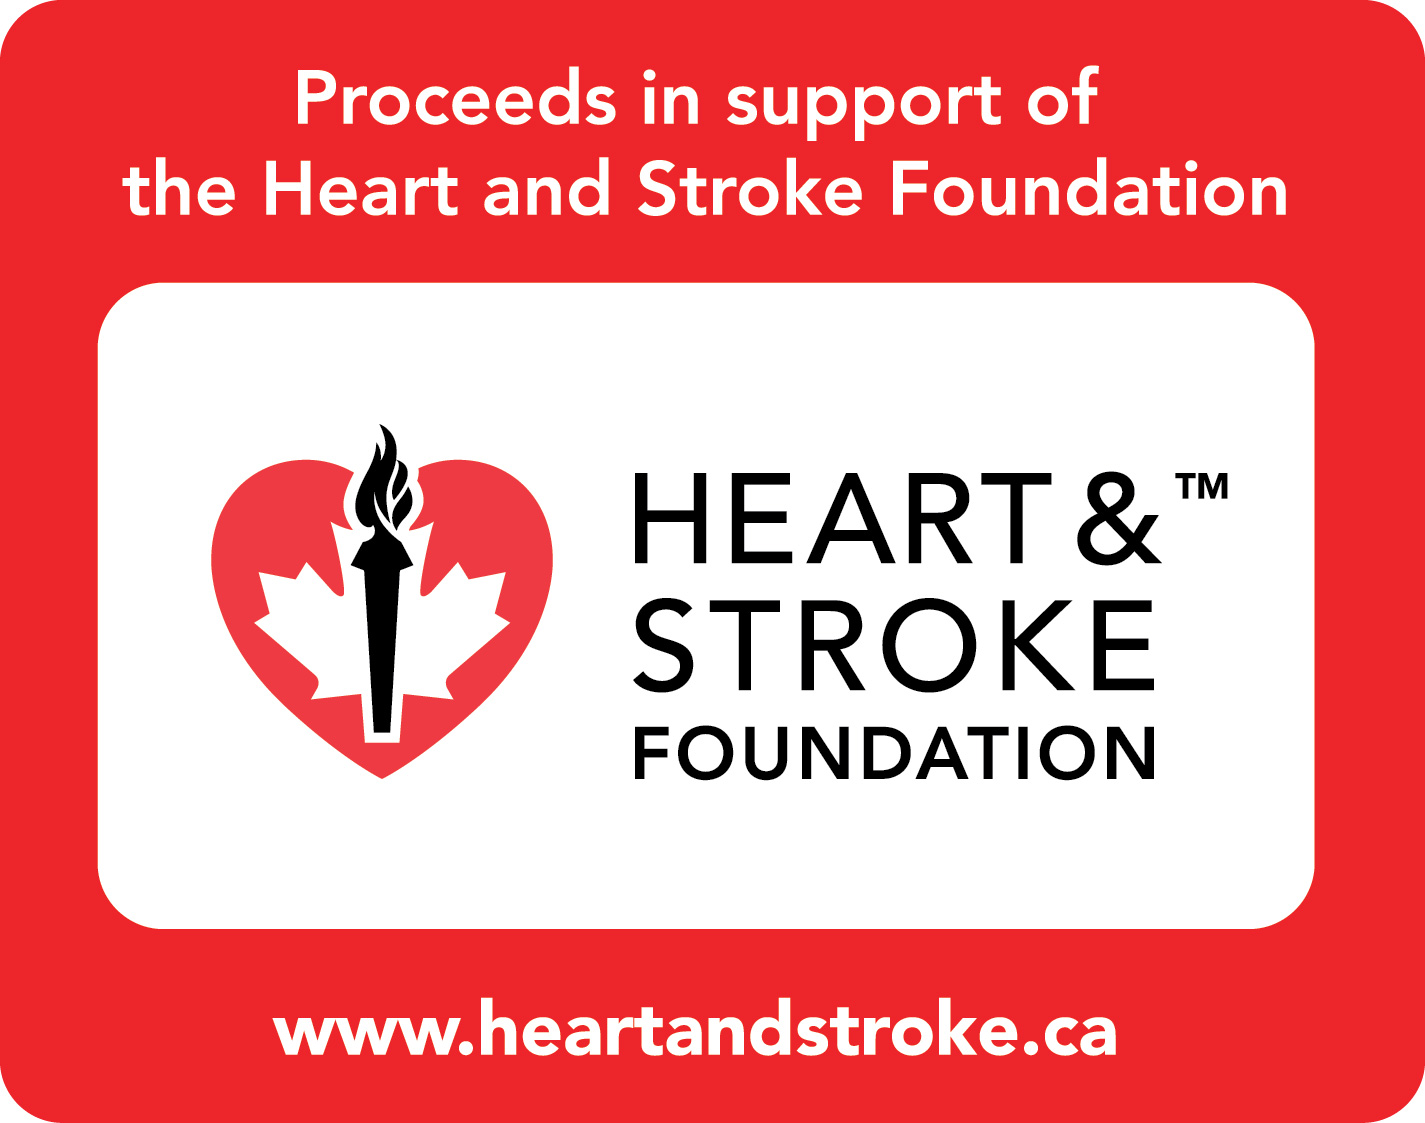 In support of the Edmonton Heart & Stroke Foundation